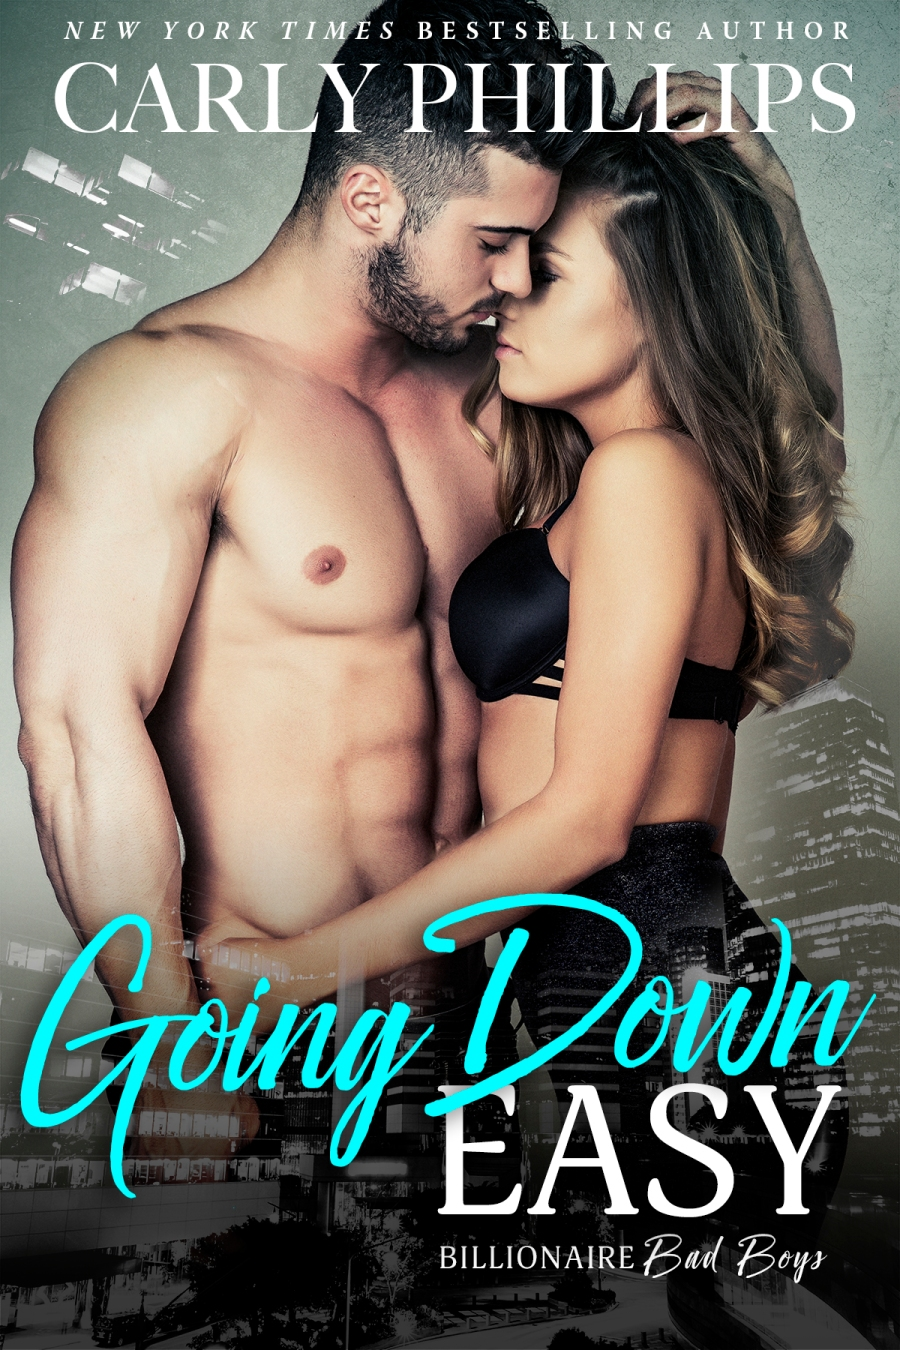 Author Carly Phillips Going Down Easy_amazon 7.20.16